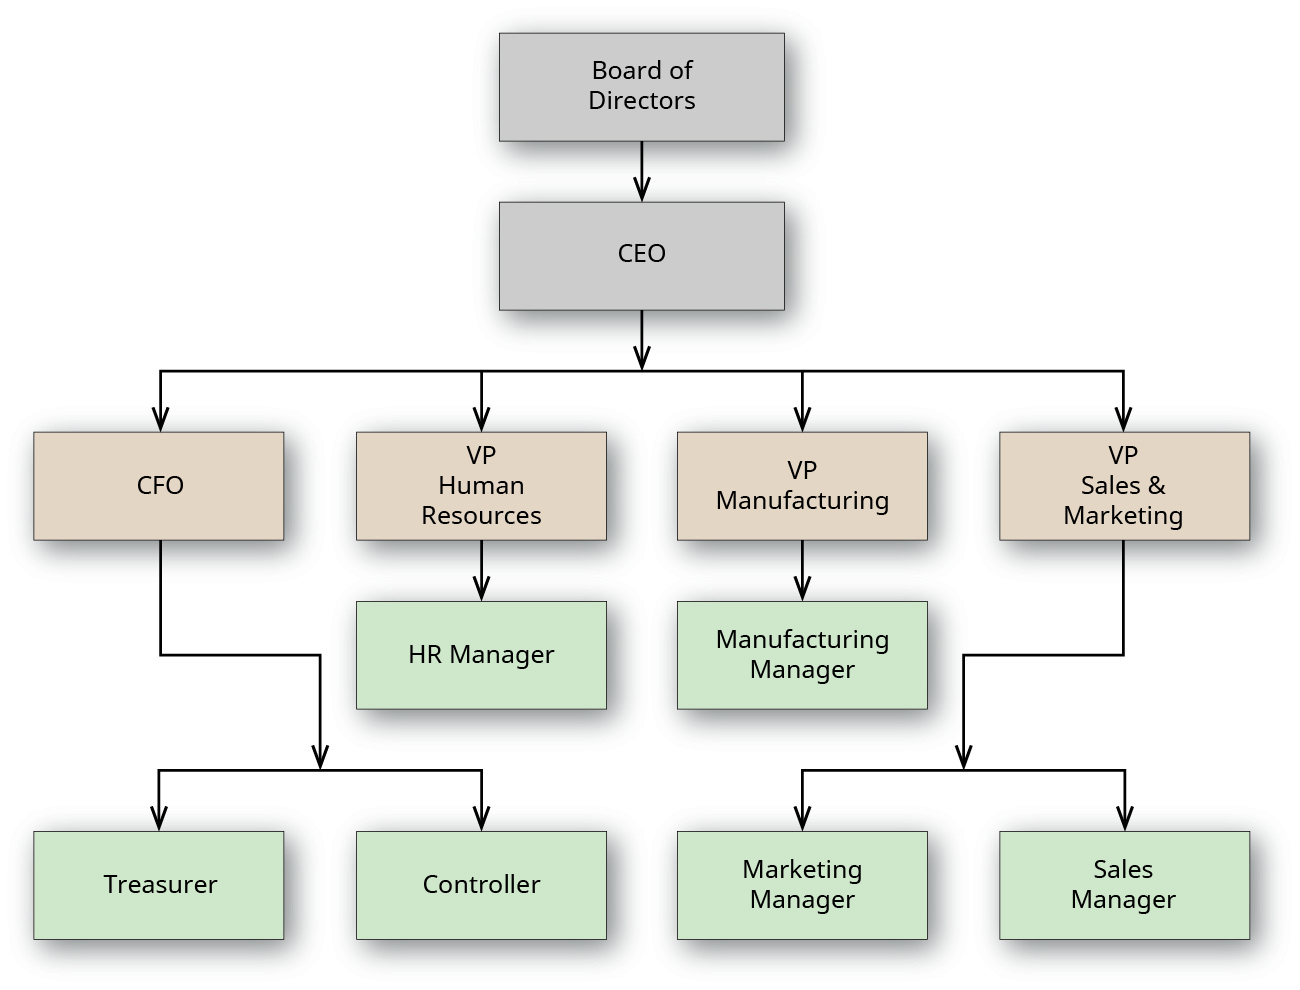 A chart outlines workflow for an organization. At the top is the board of directors. Below that is the CEO. The line below that is CFO, VP Human Resources, VP Manufacturing, and VP Sales and Marketing. Below the CFO is Treasurer and Controller. Below VP Human Resources is HR Manager. Below VP Manufacturing is Manufacturing Manager. Below VP Sales and Marketing is Marketing Manager and Sales Manager.